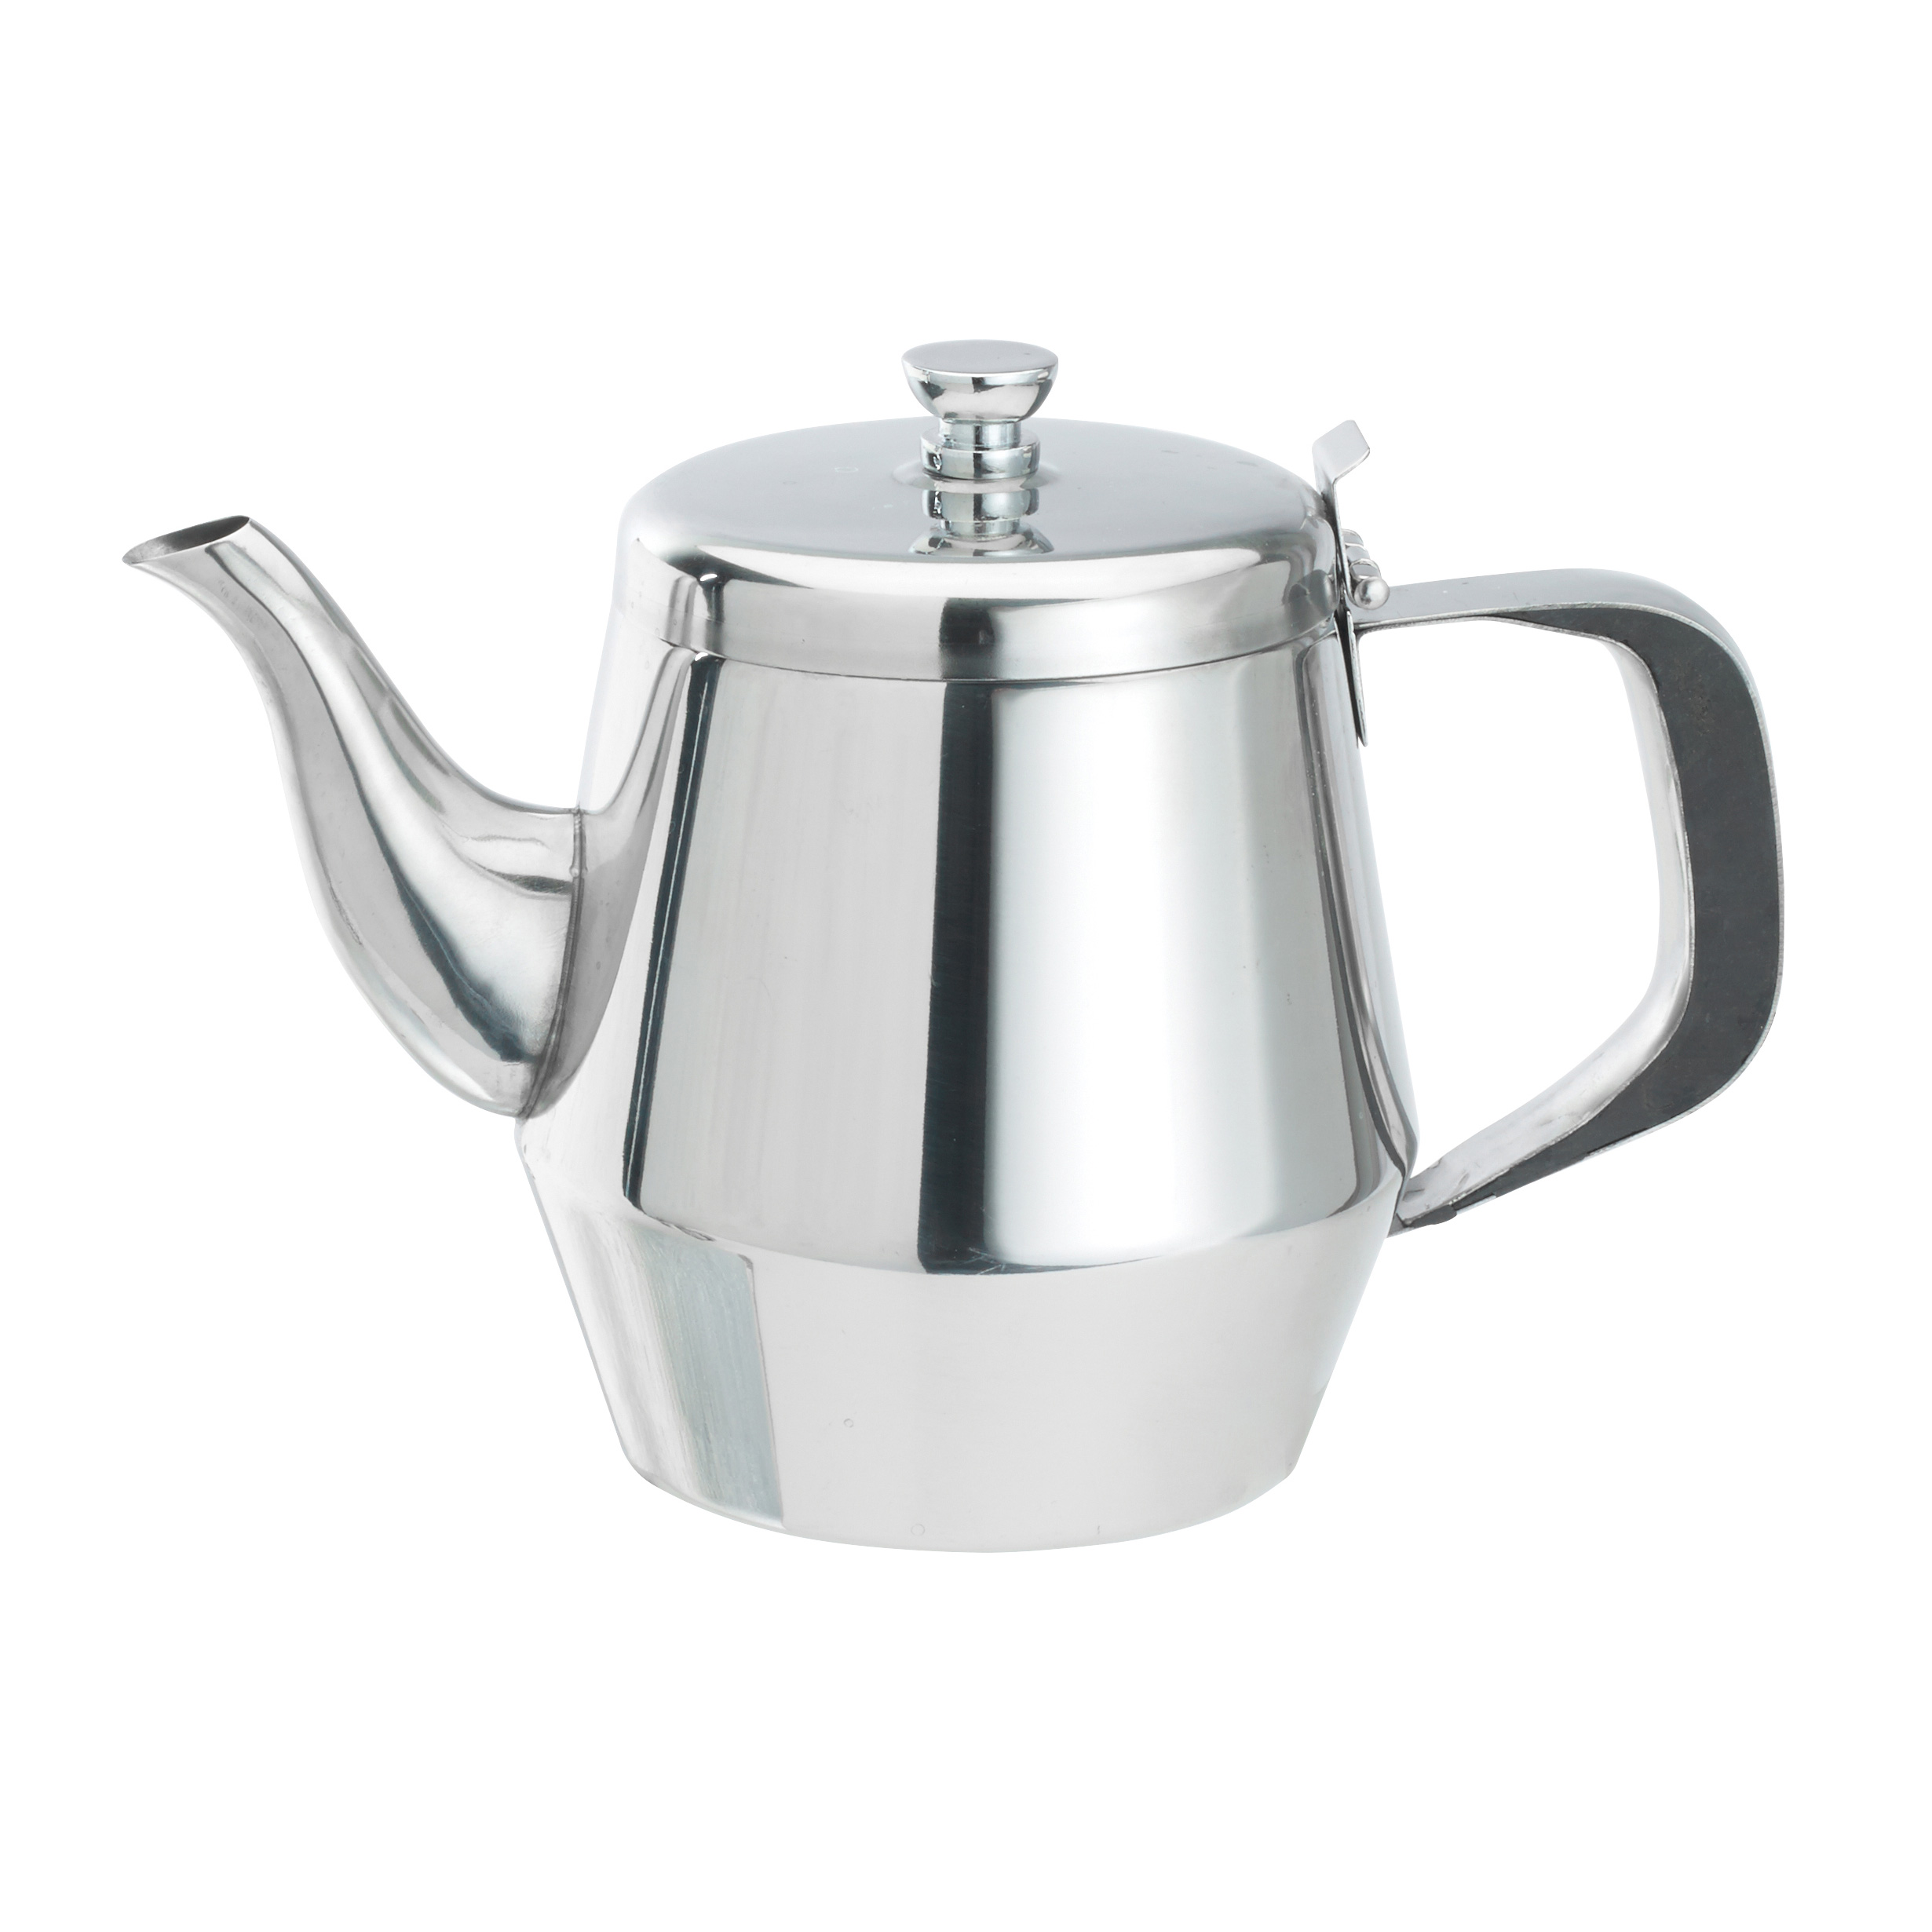 Winco JB2928 coffee pot/teapot, metal